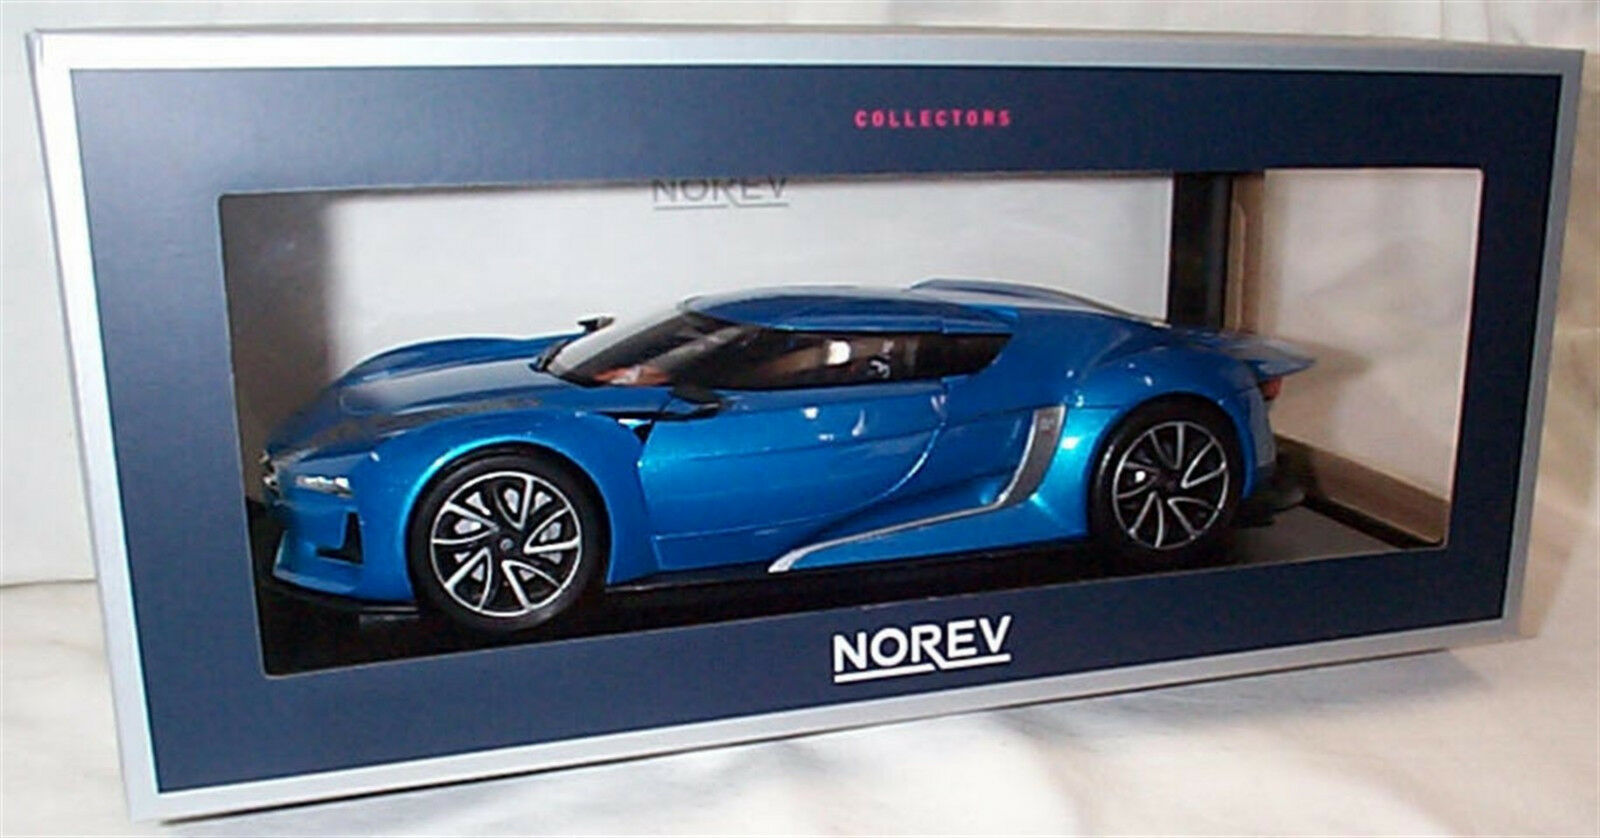 Gt by Citroën Salon Paris 2008 Electric bleu 1 18 - 181613 NOREV